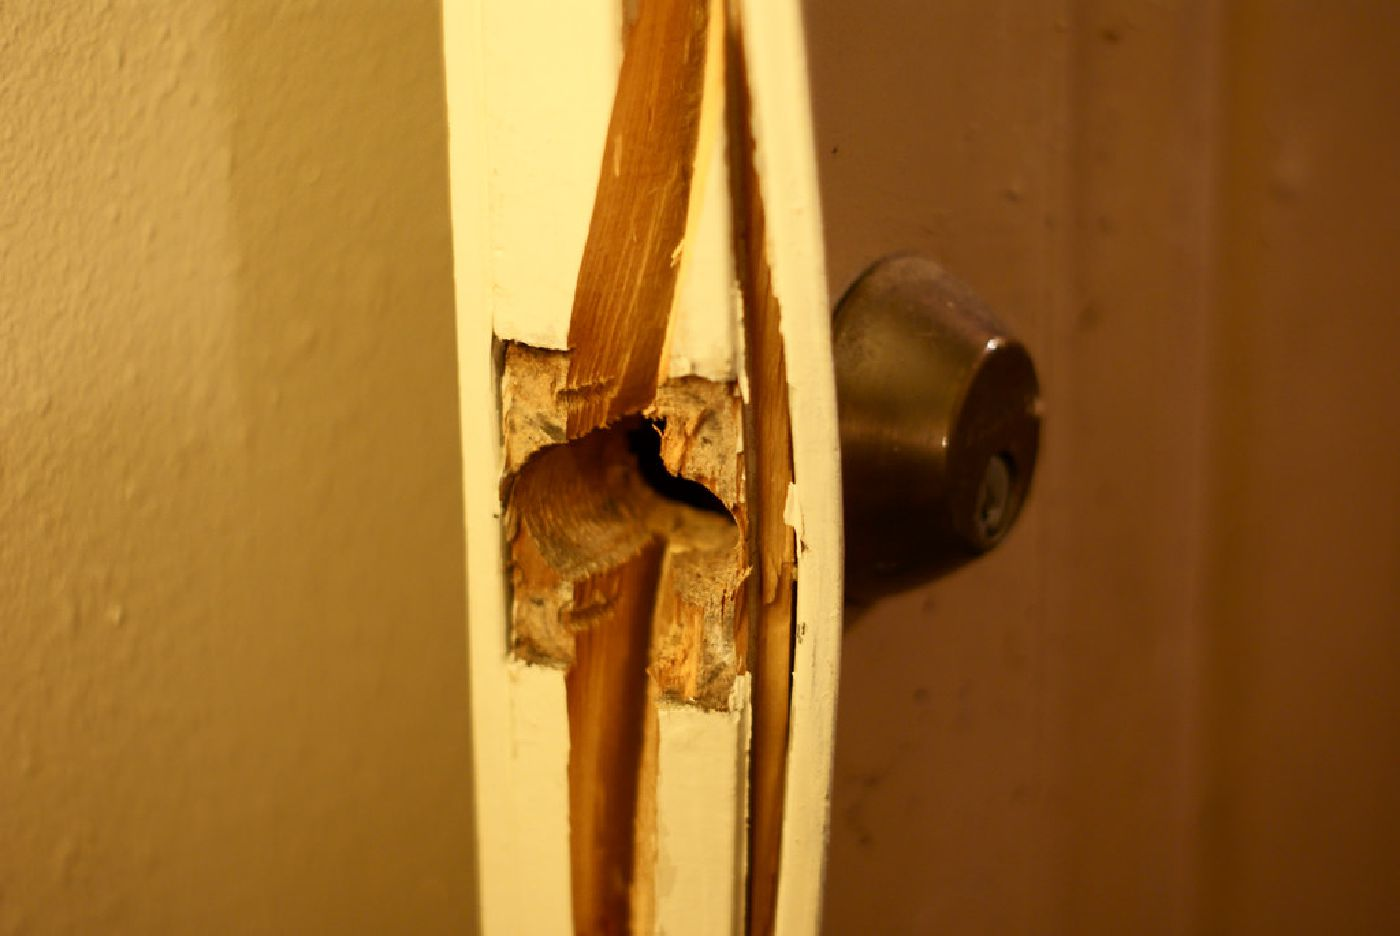 Close-up of a regular door split apart by a forceful kick